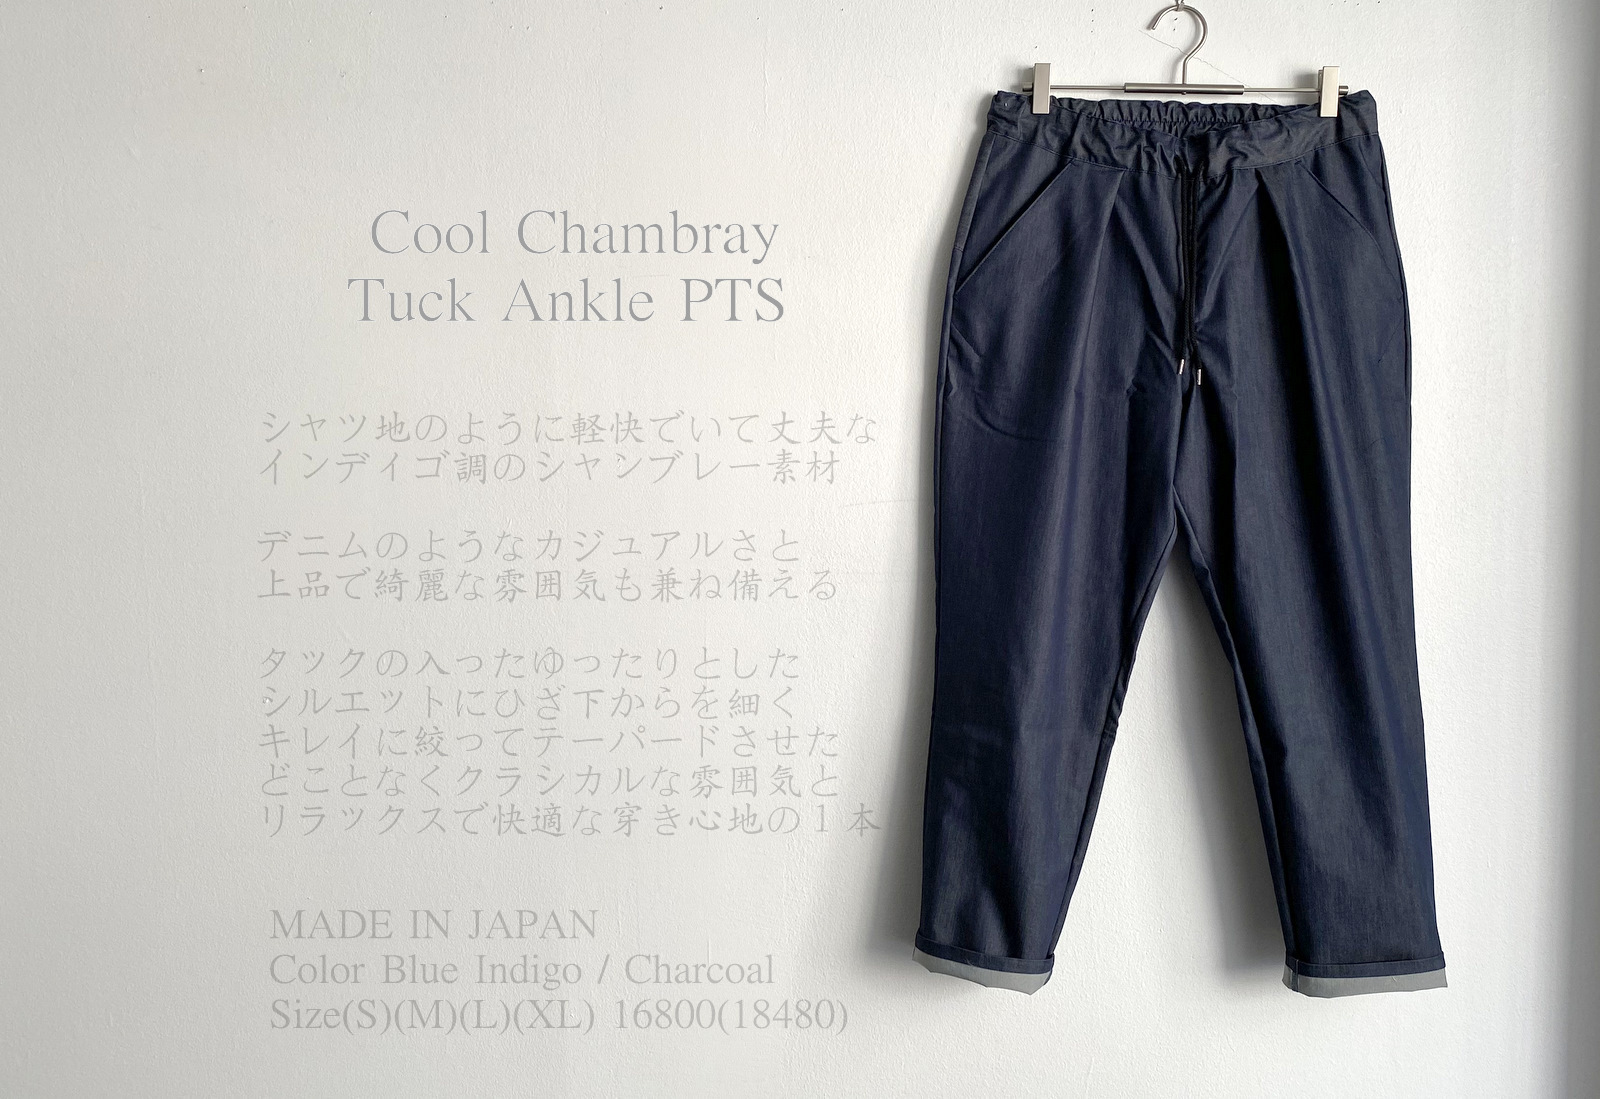 Cool Chambray Tuck Ankle PTS_c0379477_19335069.jpg